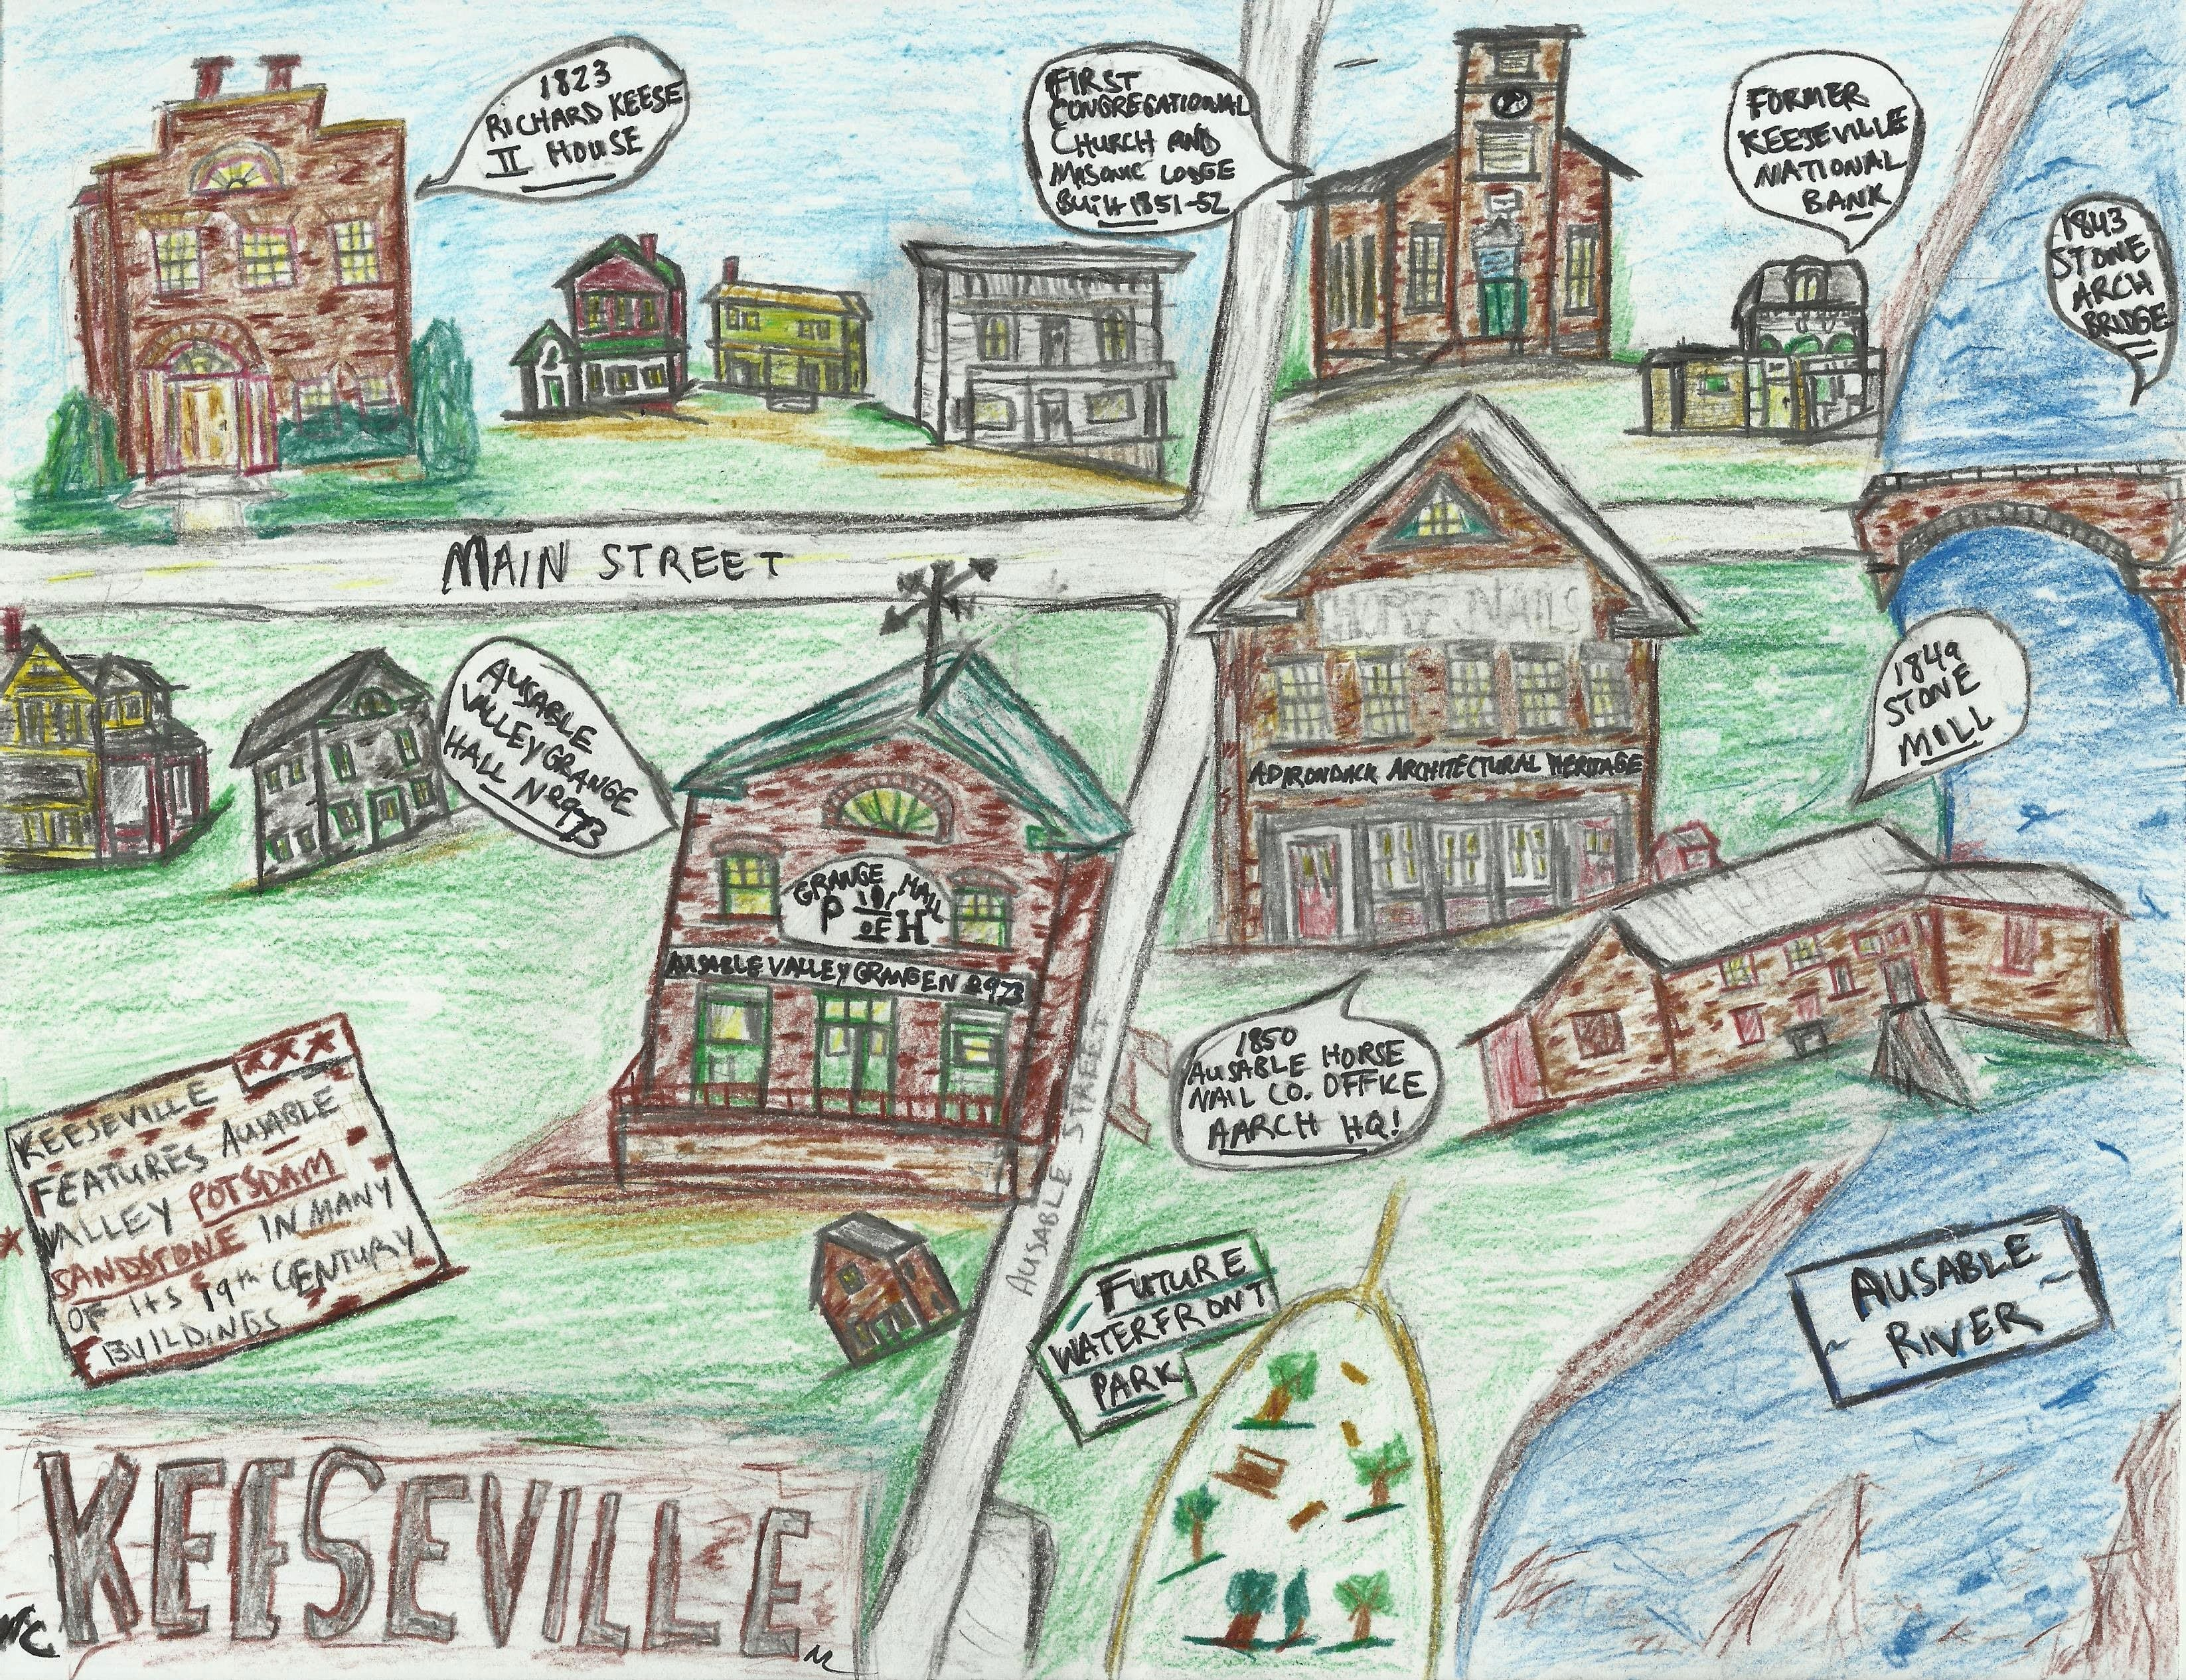 Keeseville Map